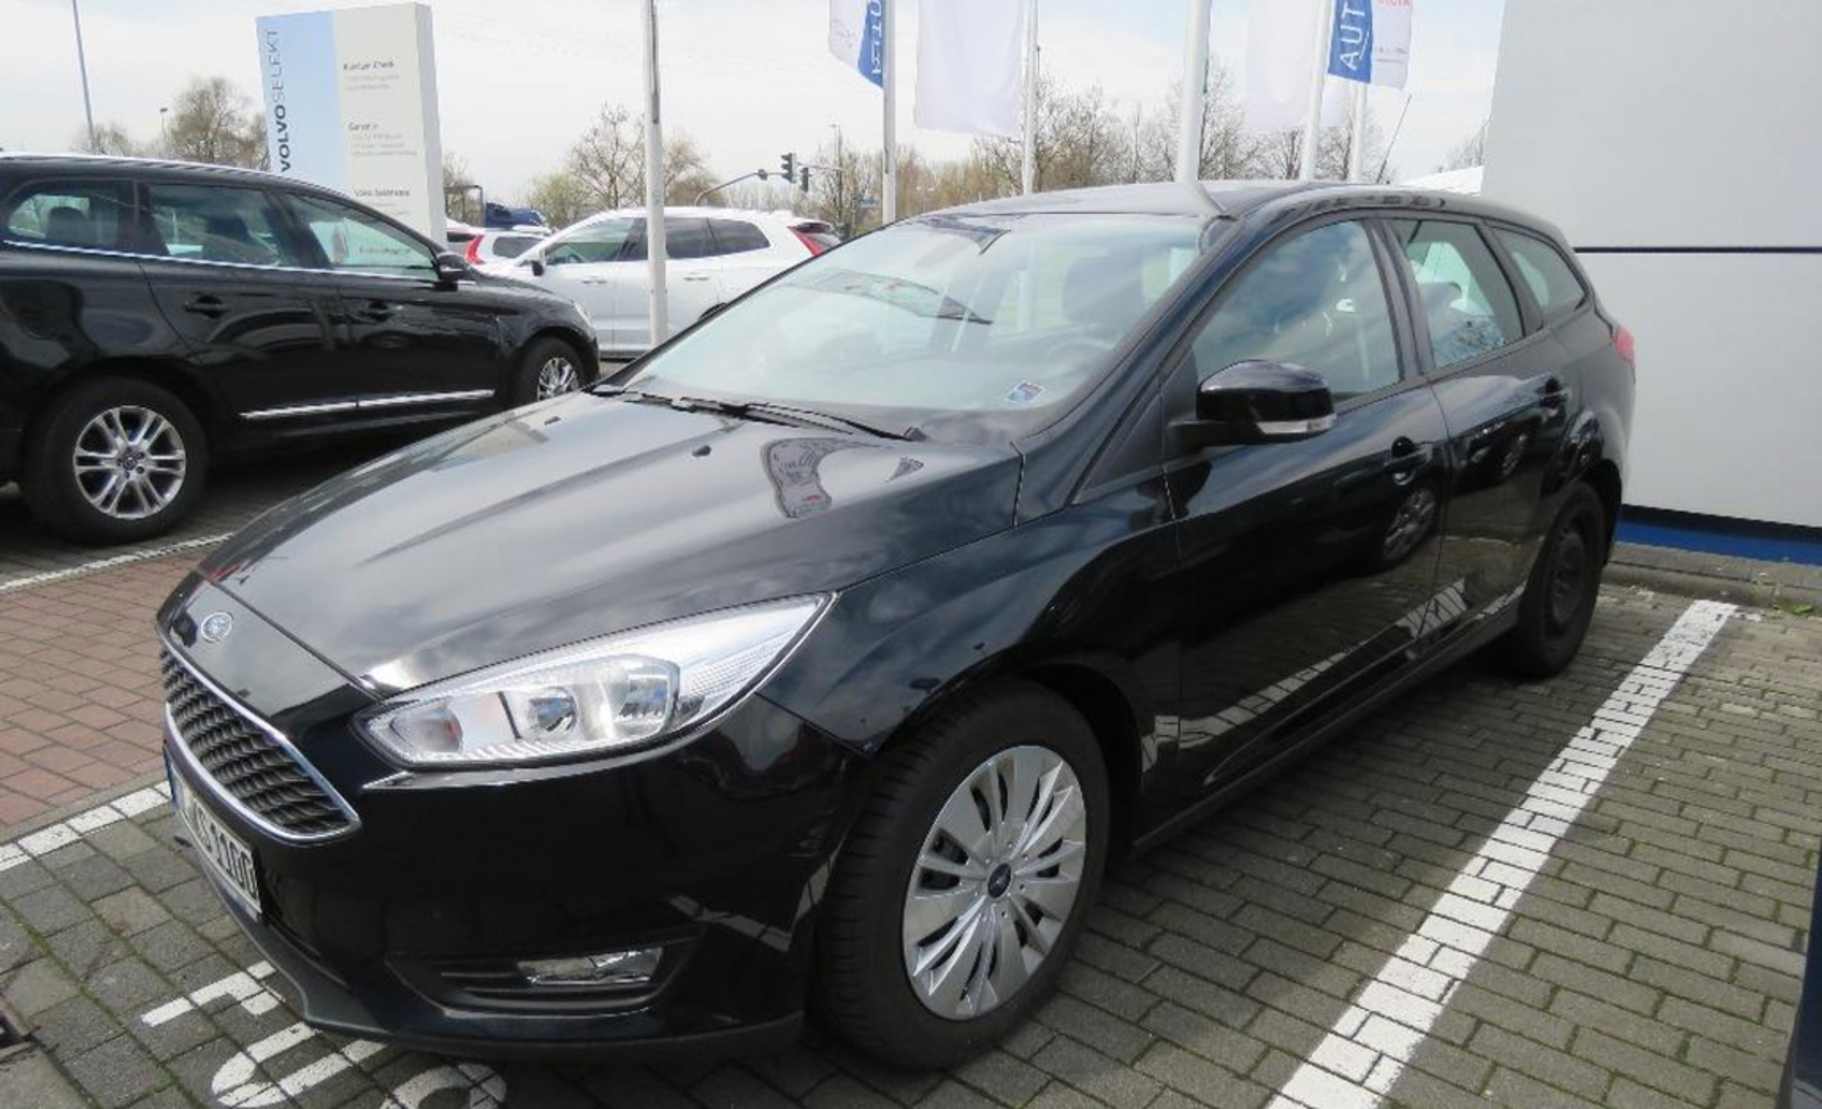 Ford Focus 1.5 TDCi DPF Start-Stop Ambiente (576315) detail1